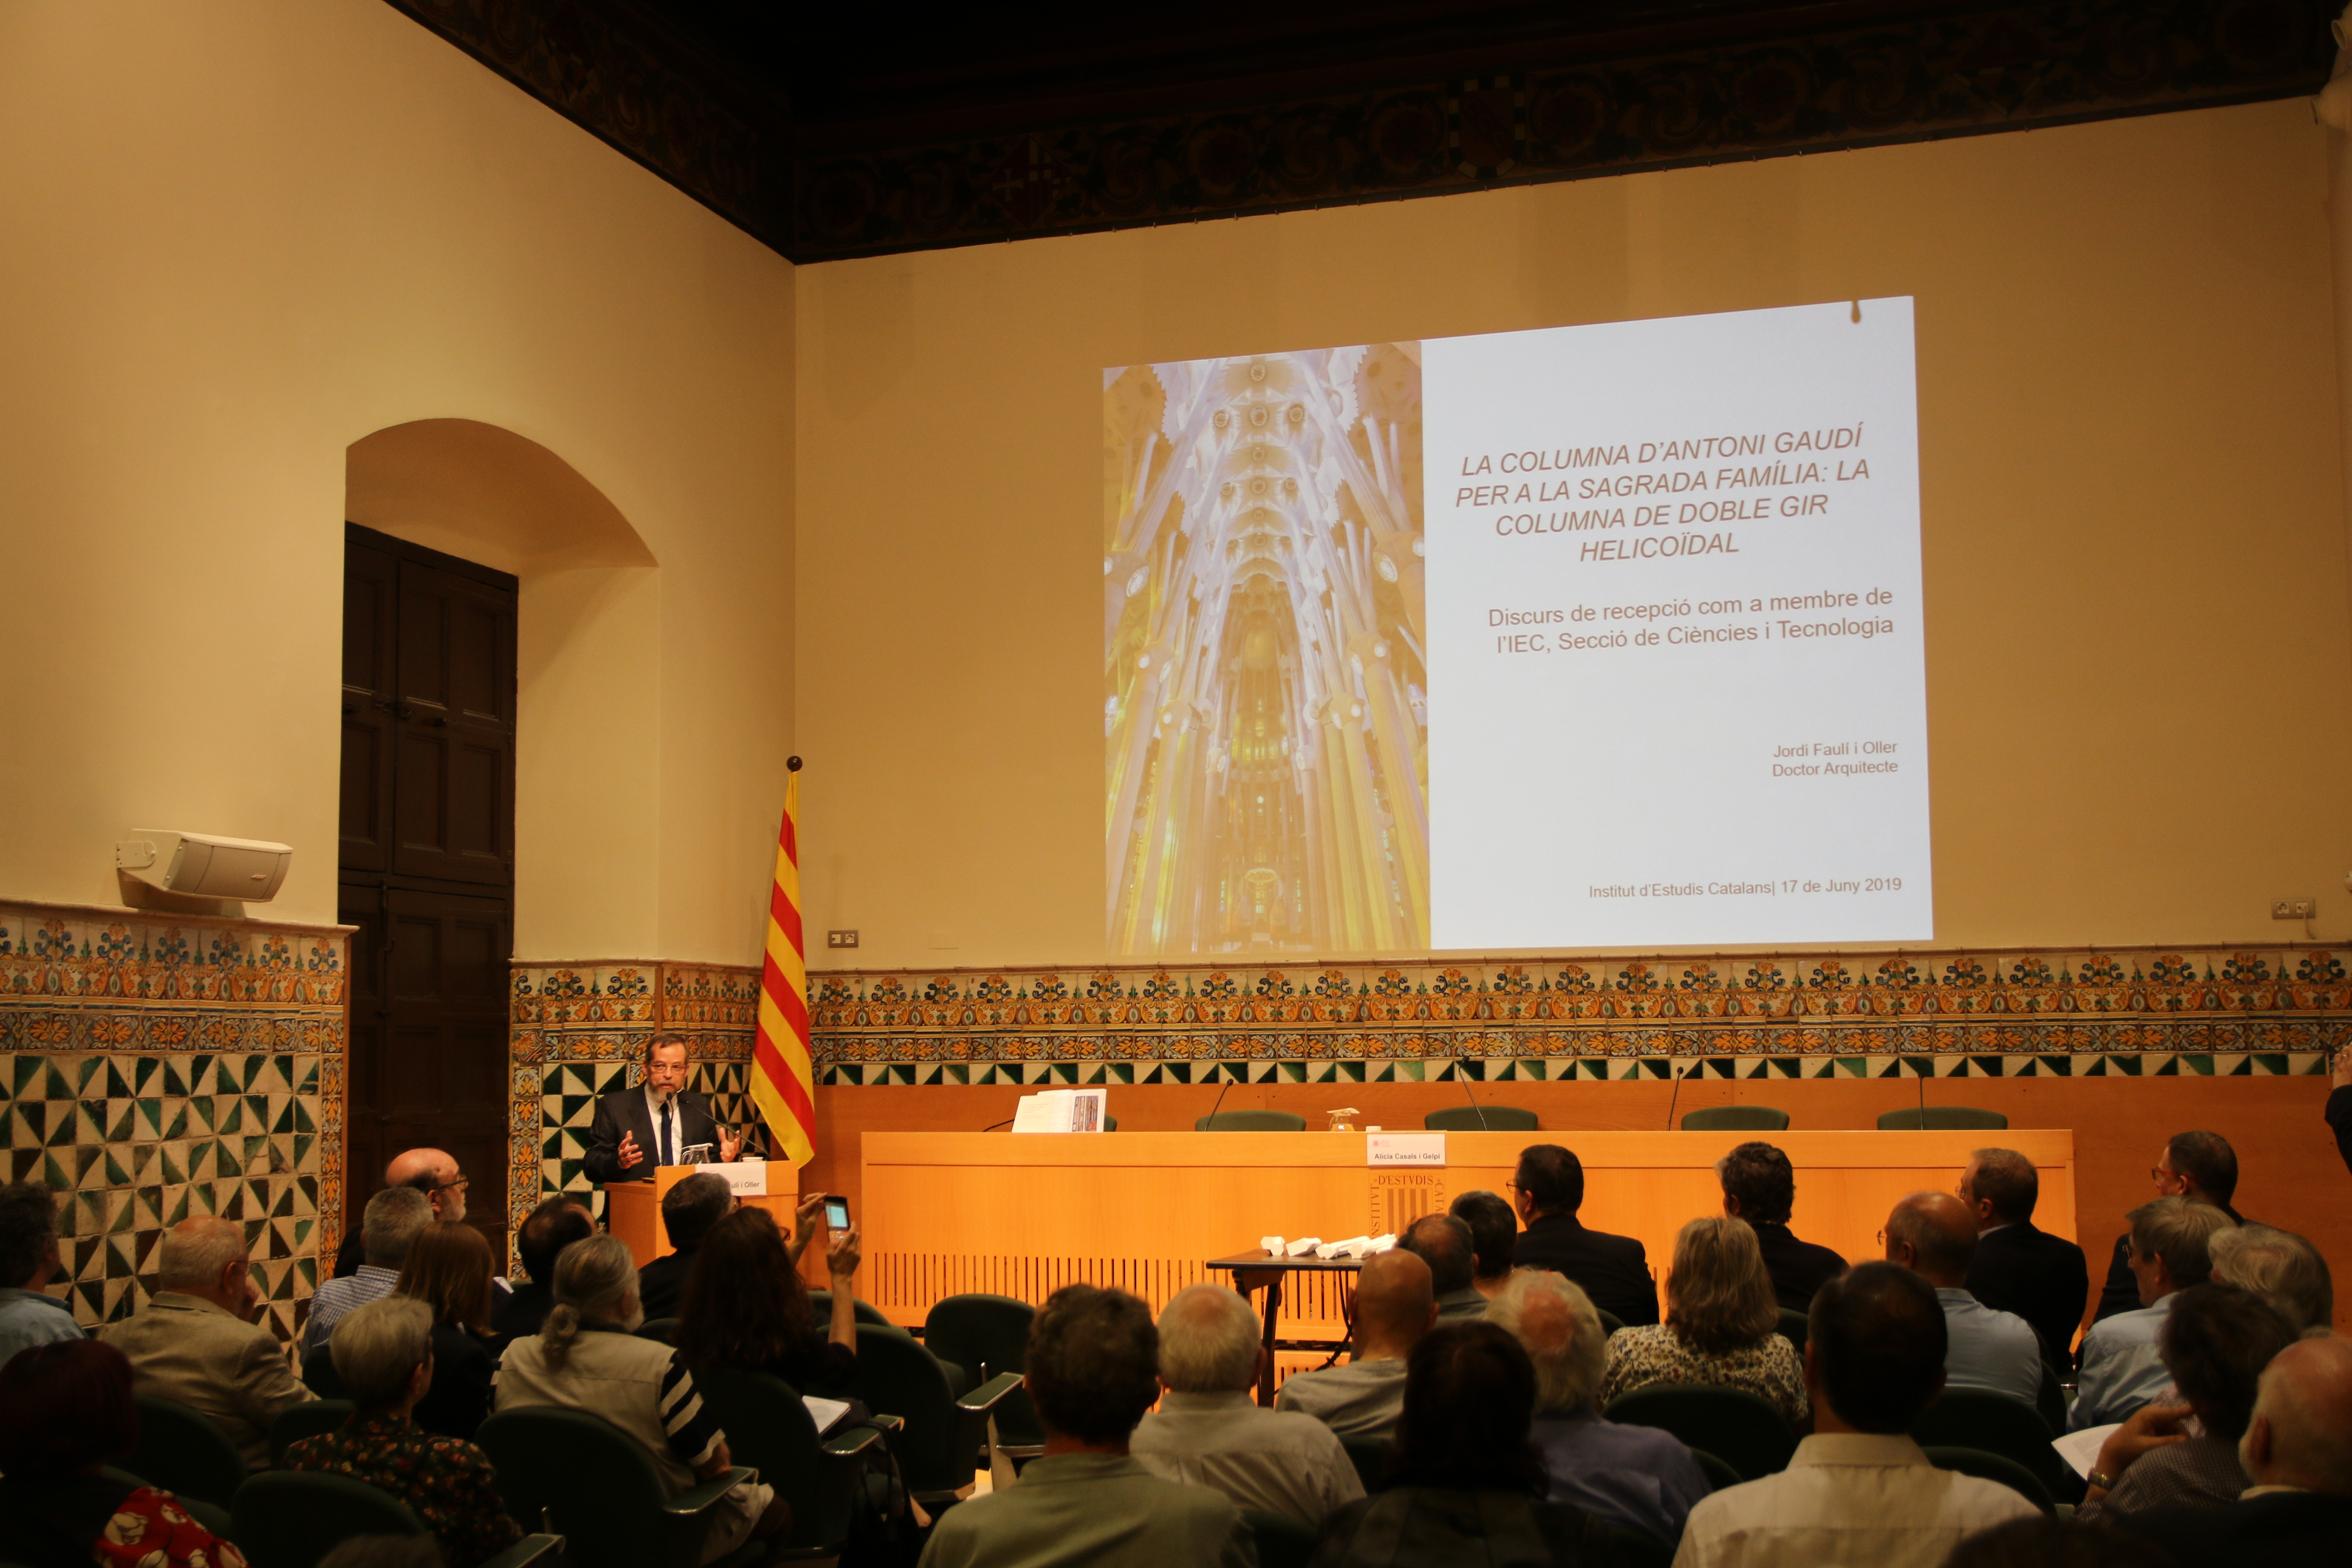 Jordi Faulí gives speech accepting nomination as a permanent member of Institut d'Estudis Catalans